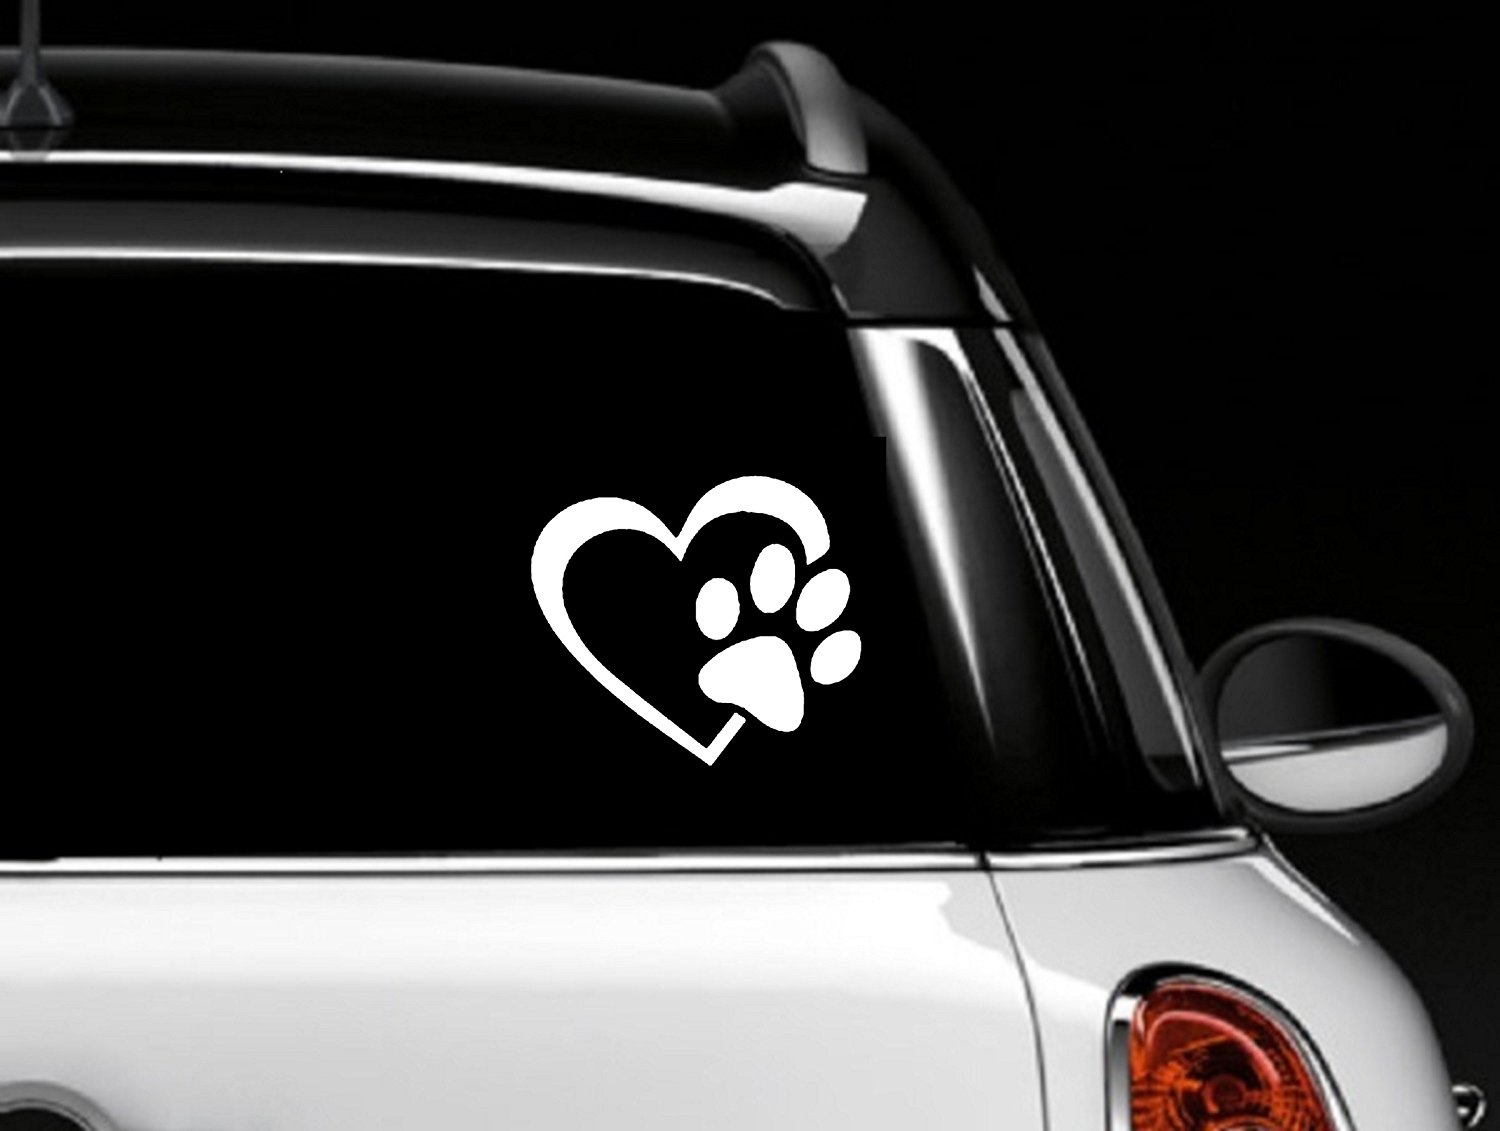 Cool Stickers For Cars